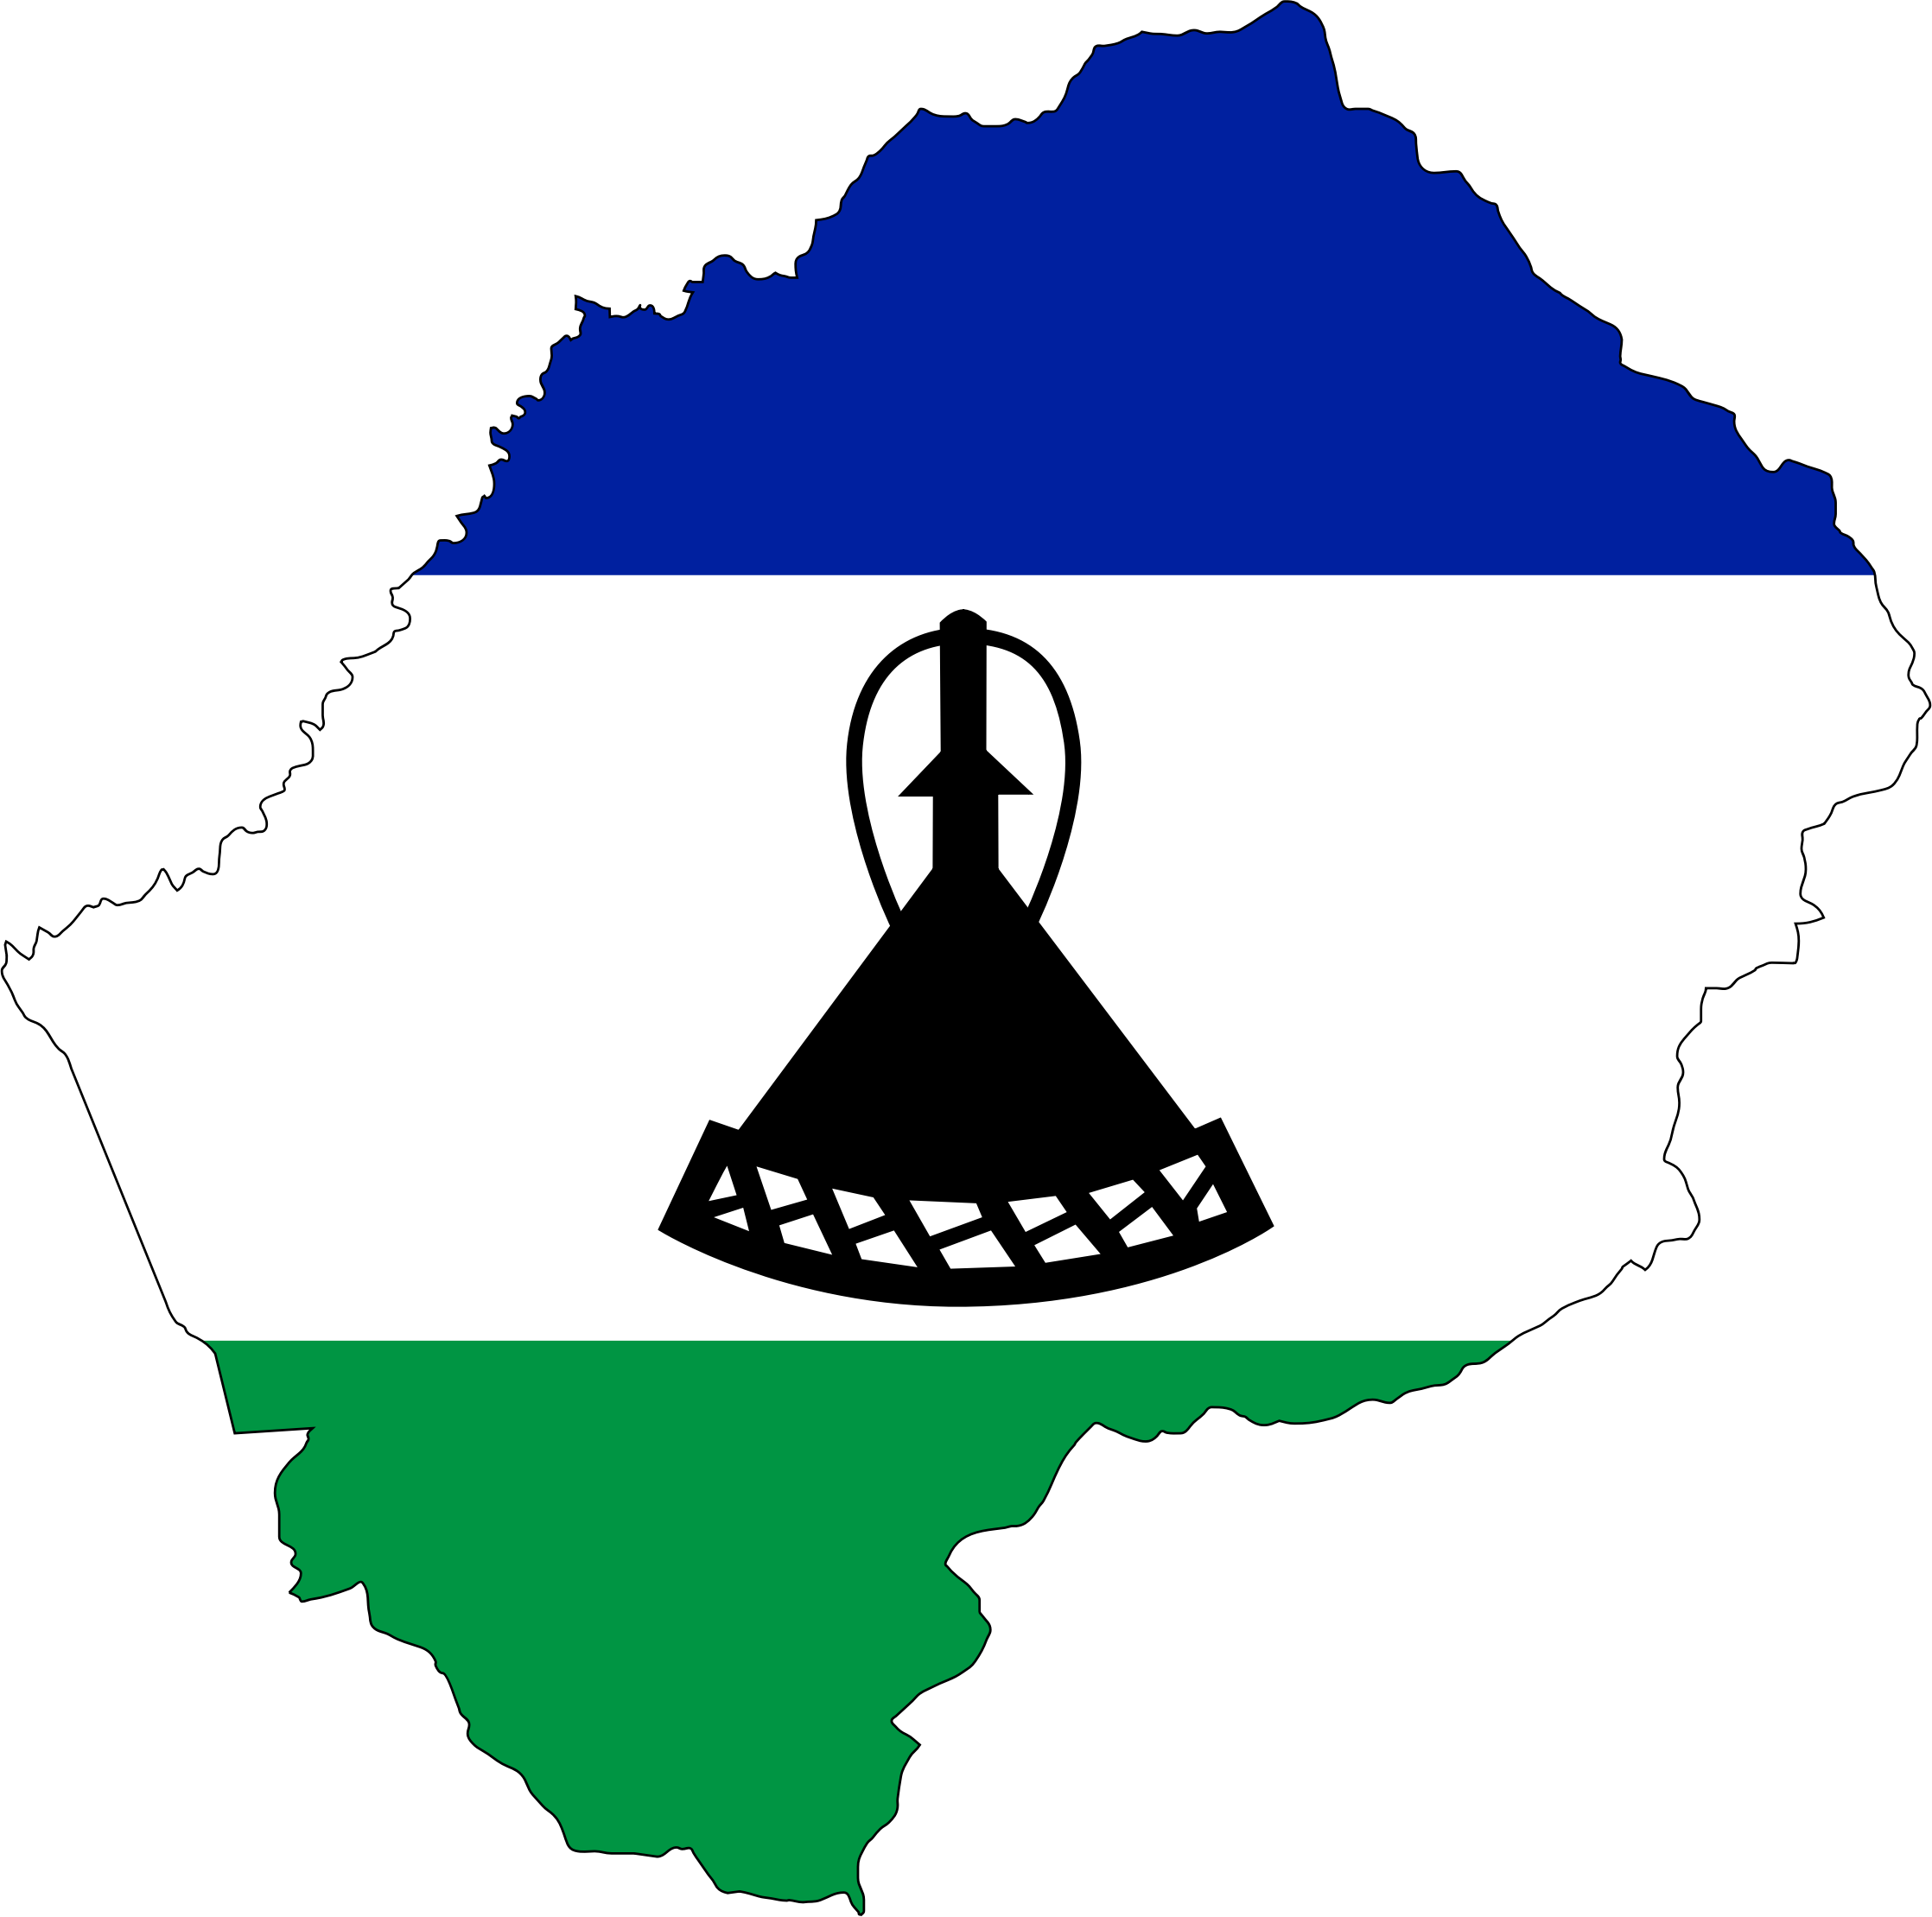 Lesotho Flag Map With Stroke by GDJ